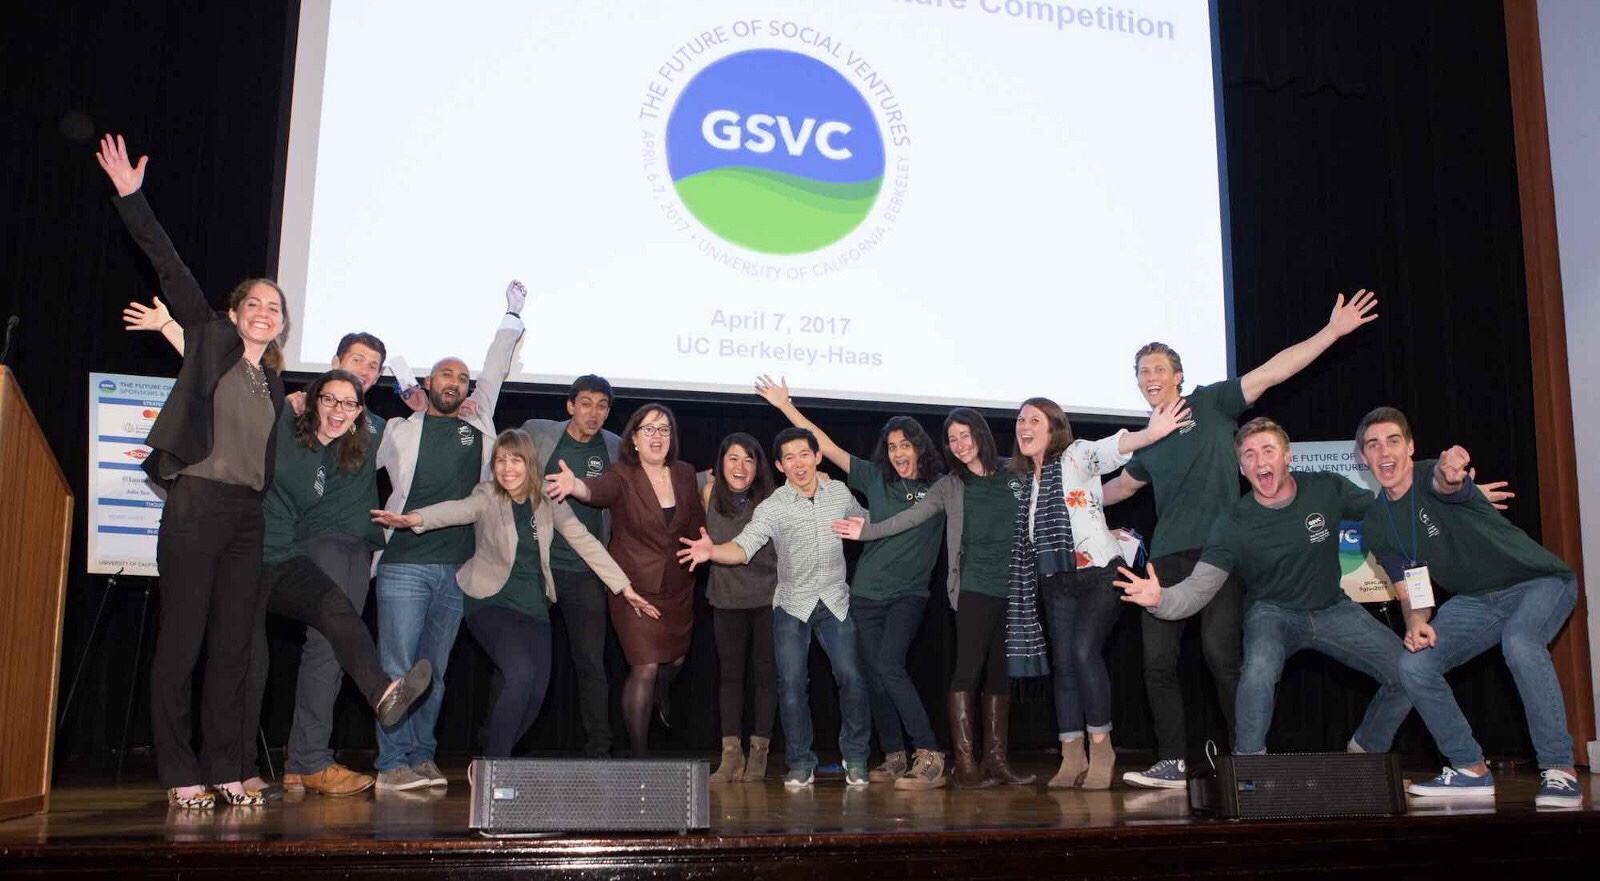 Global Social Venture Competition 2019 (up to $80,000 in prizes)